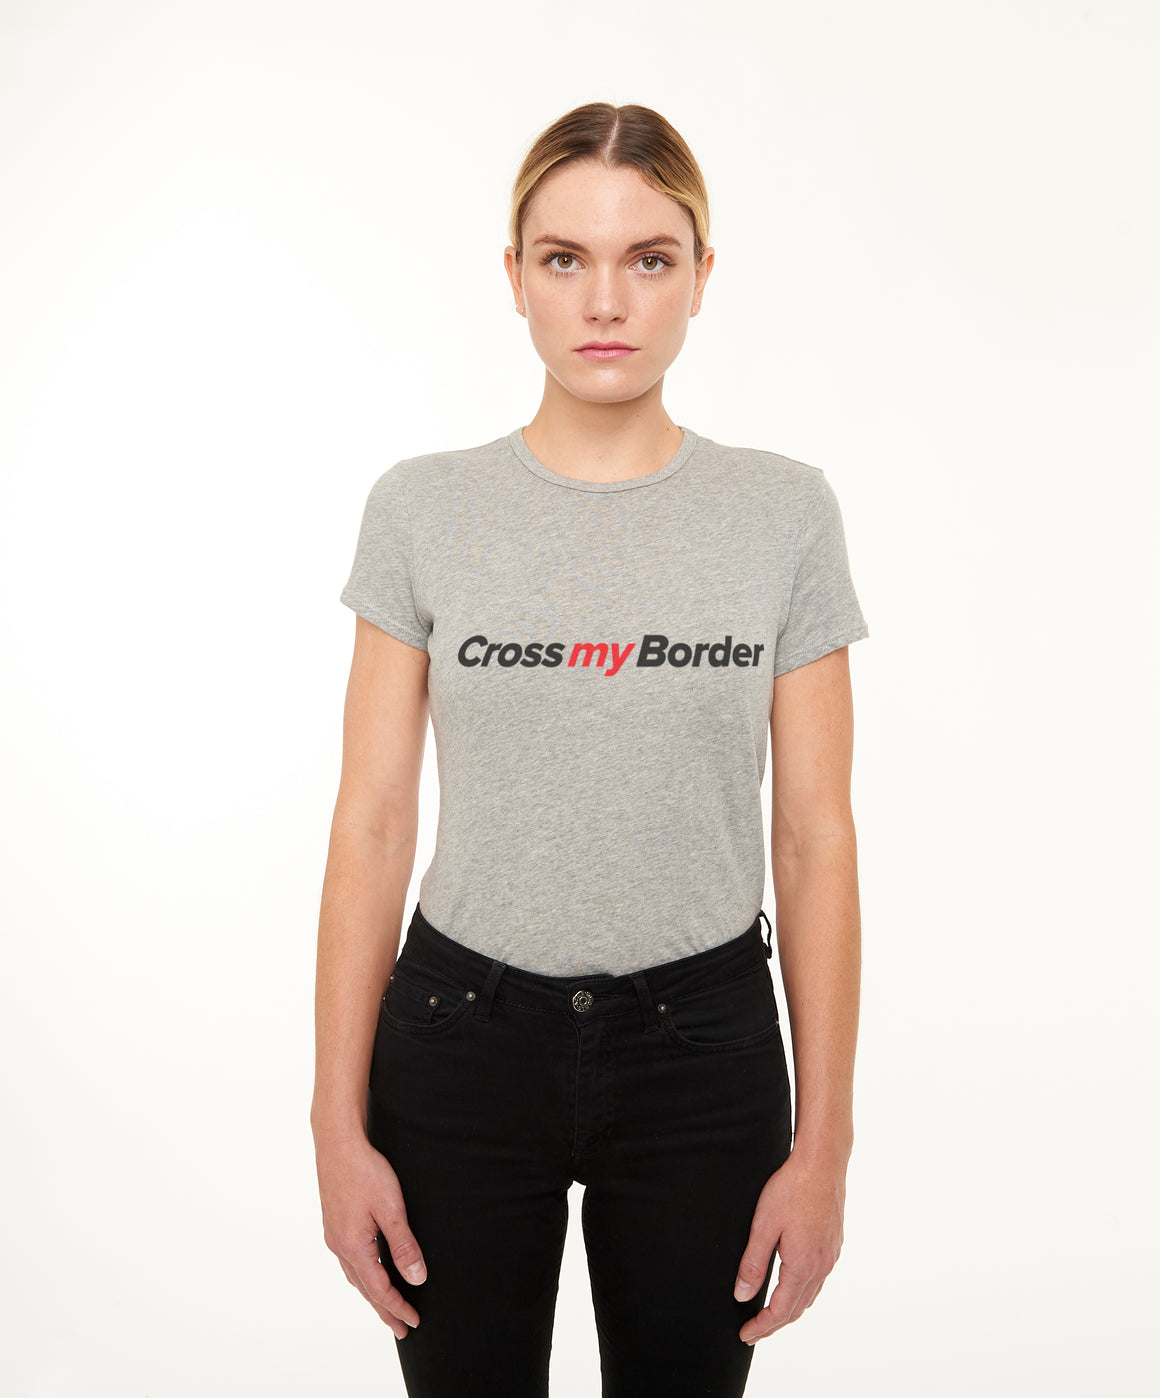 REPEL Clothing - Wear Your Voice!:Cross My Border Women's Fitted Tee - REPEL Clothing, xs / black